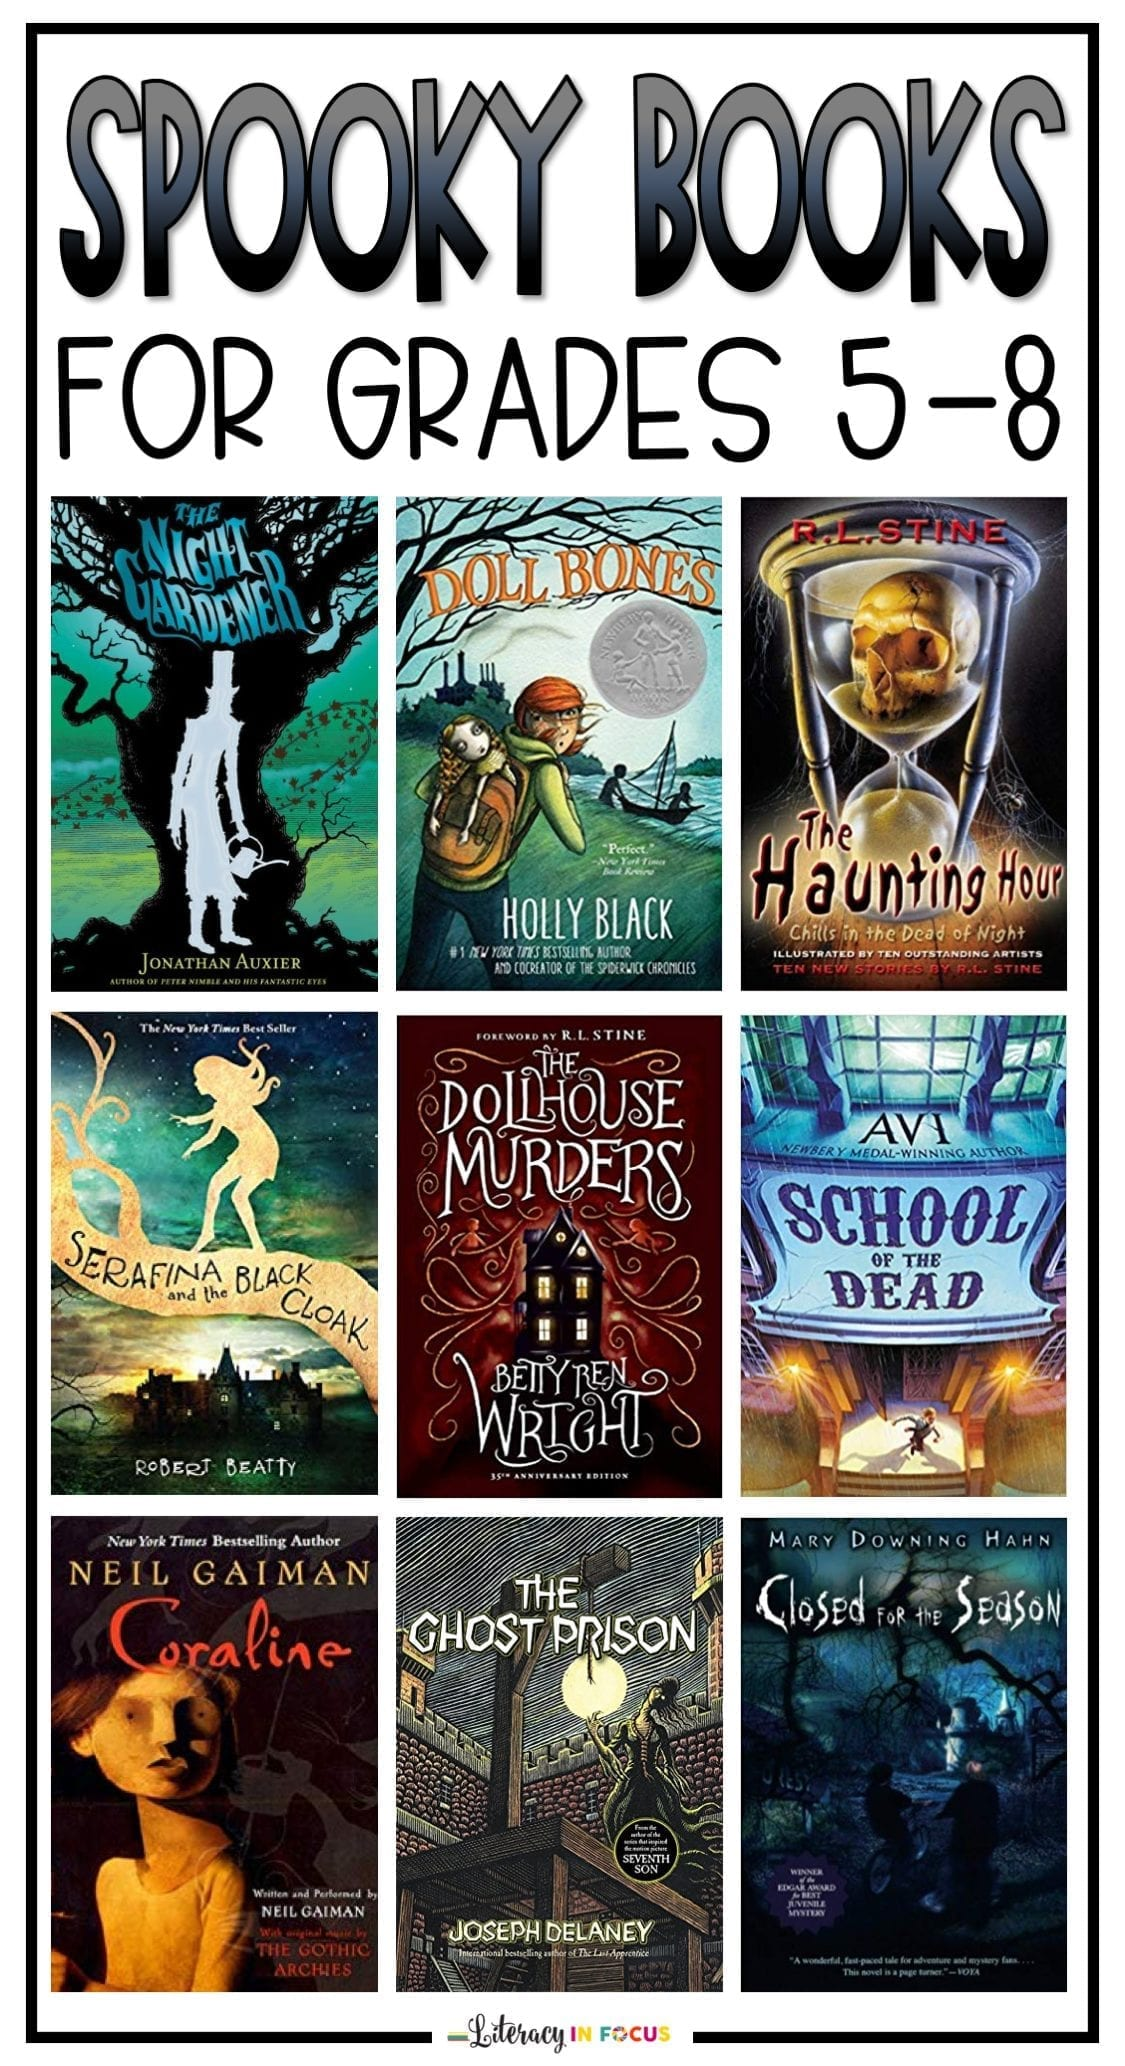 Spooky Books for Middle School Students